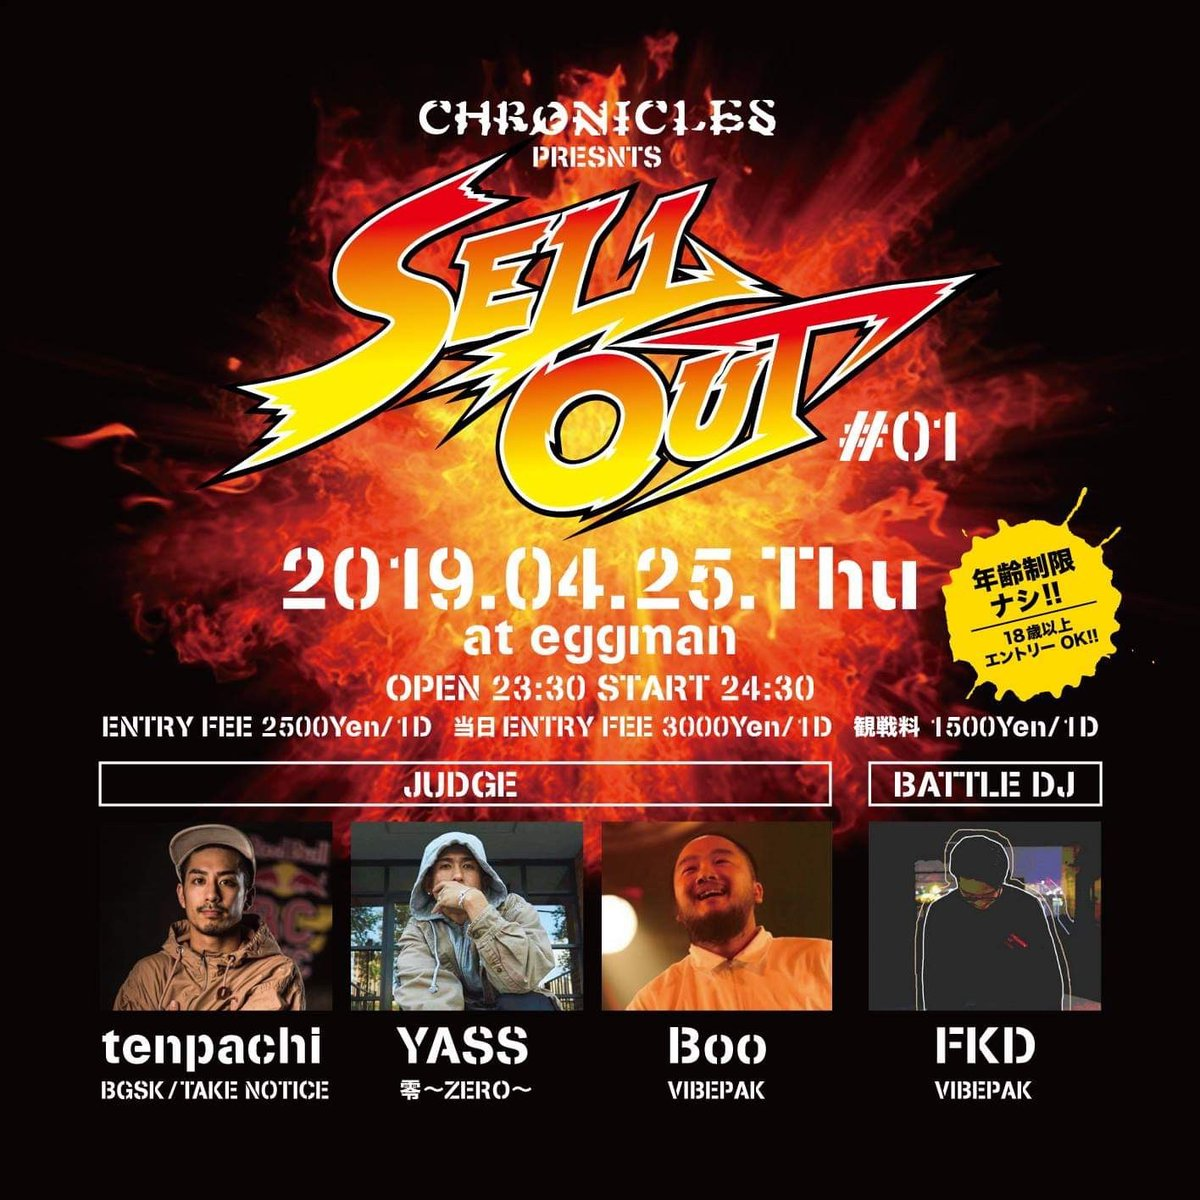 CHRONICLES PRESENTS SELL OUT‼︎ #01